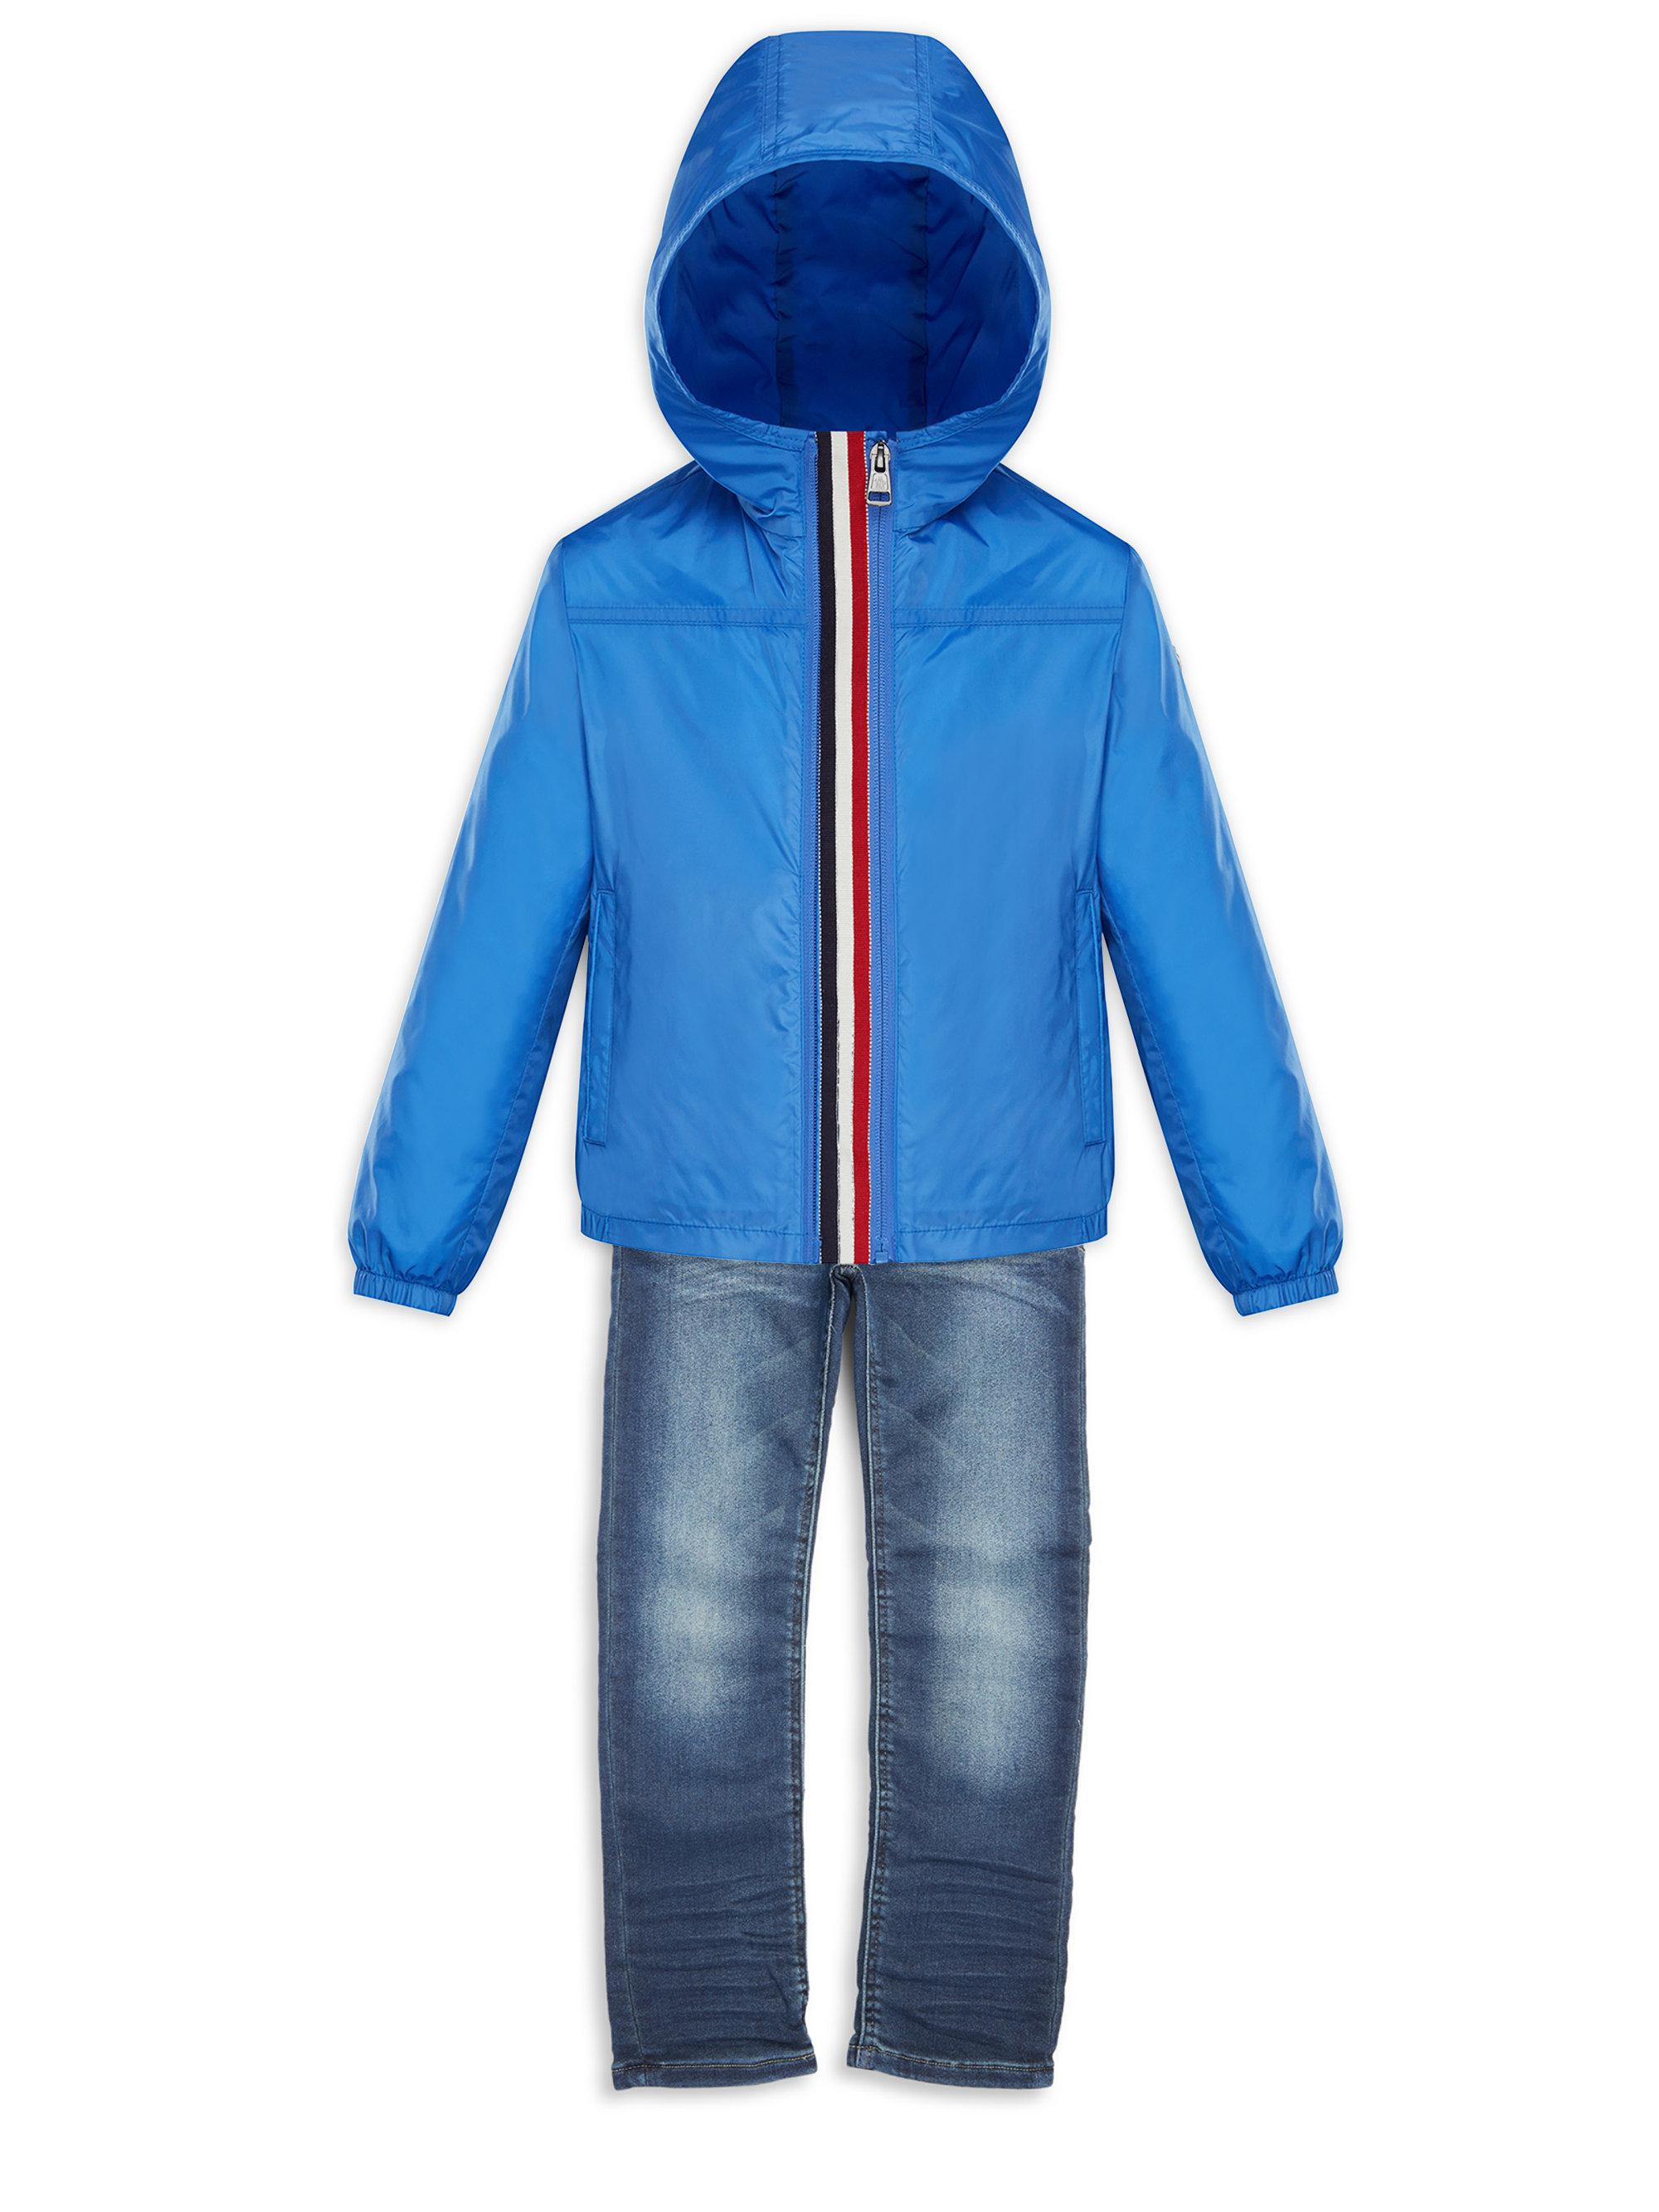 e2014aaf1 Moncler Little Boy's & Boy's Fronsac Double Zip Flag Grosgrain ...